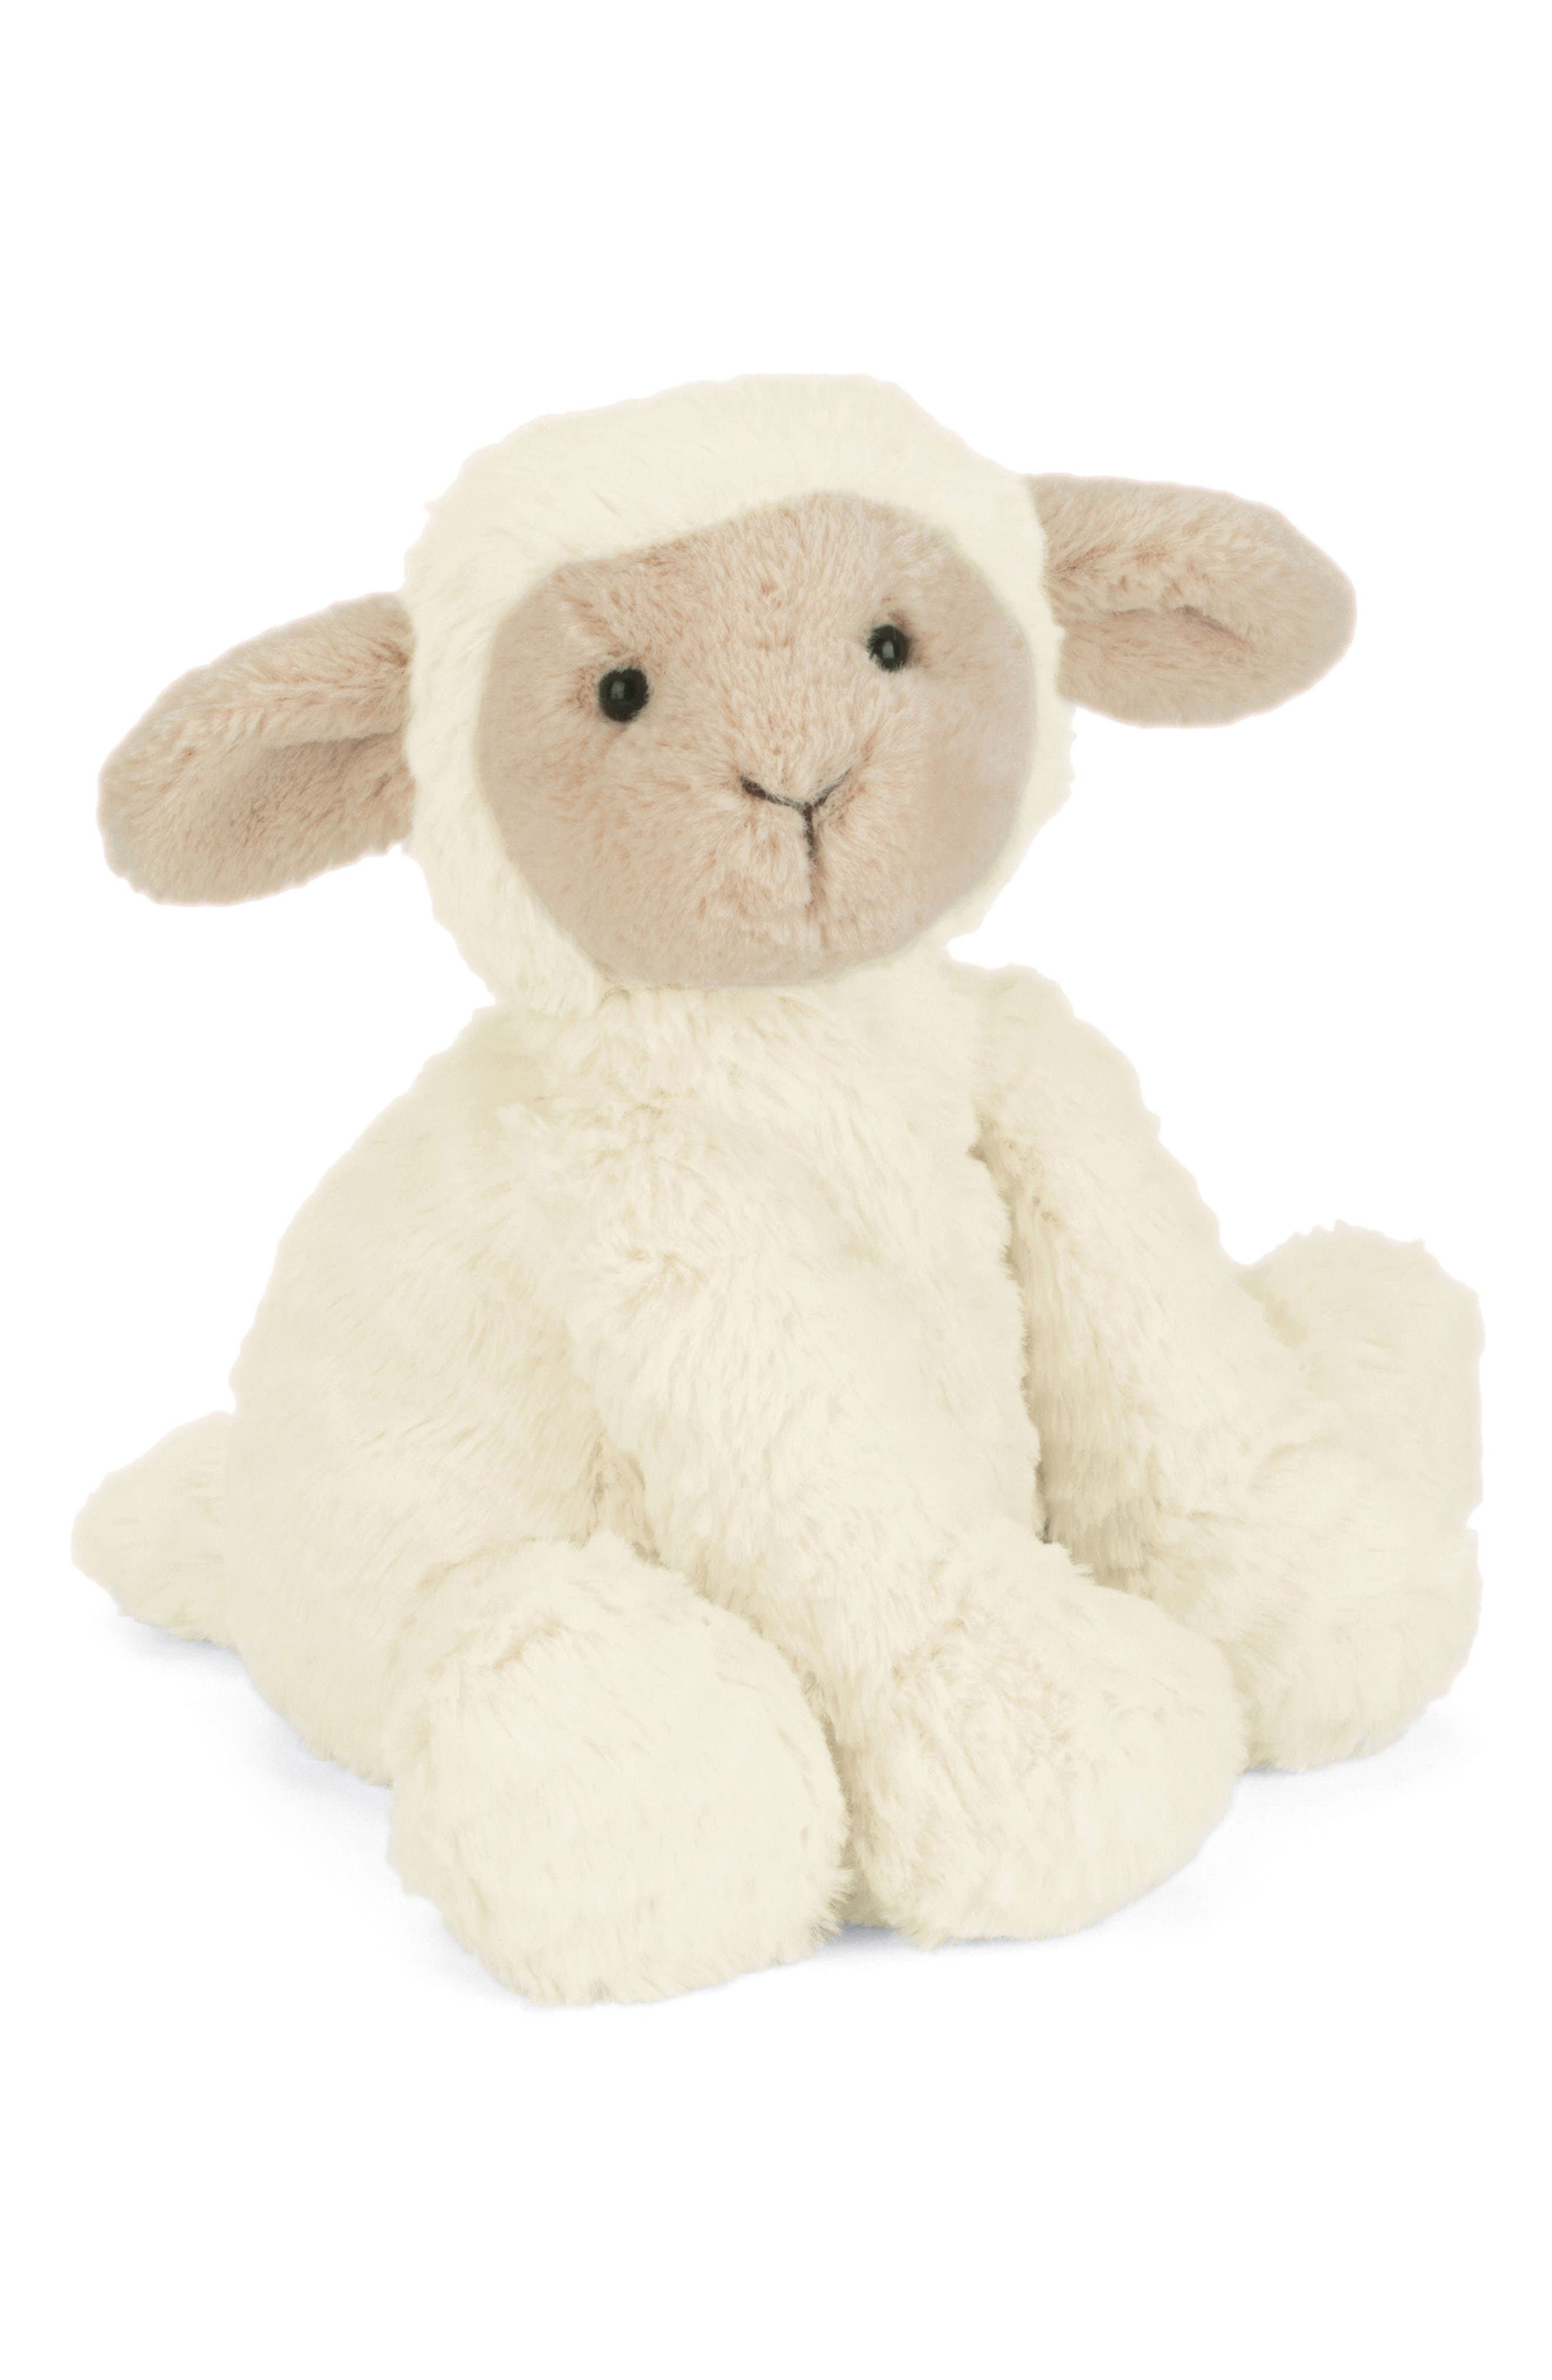 Jellycat 'Fuddlewuddle Lamb' Stuffed Animal